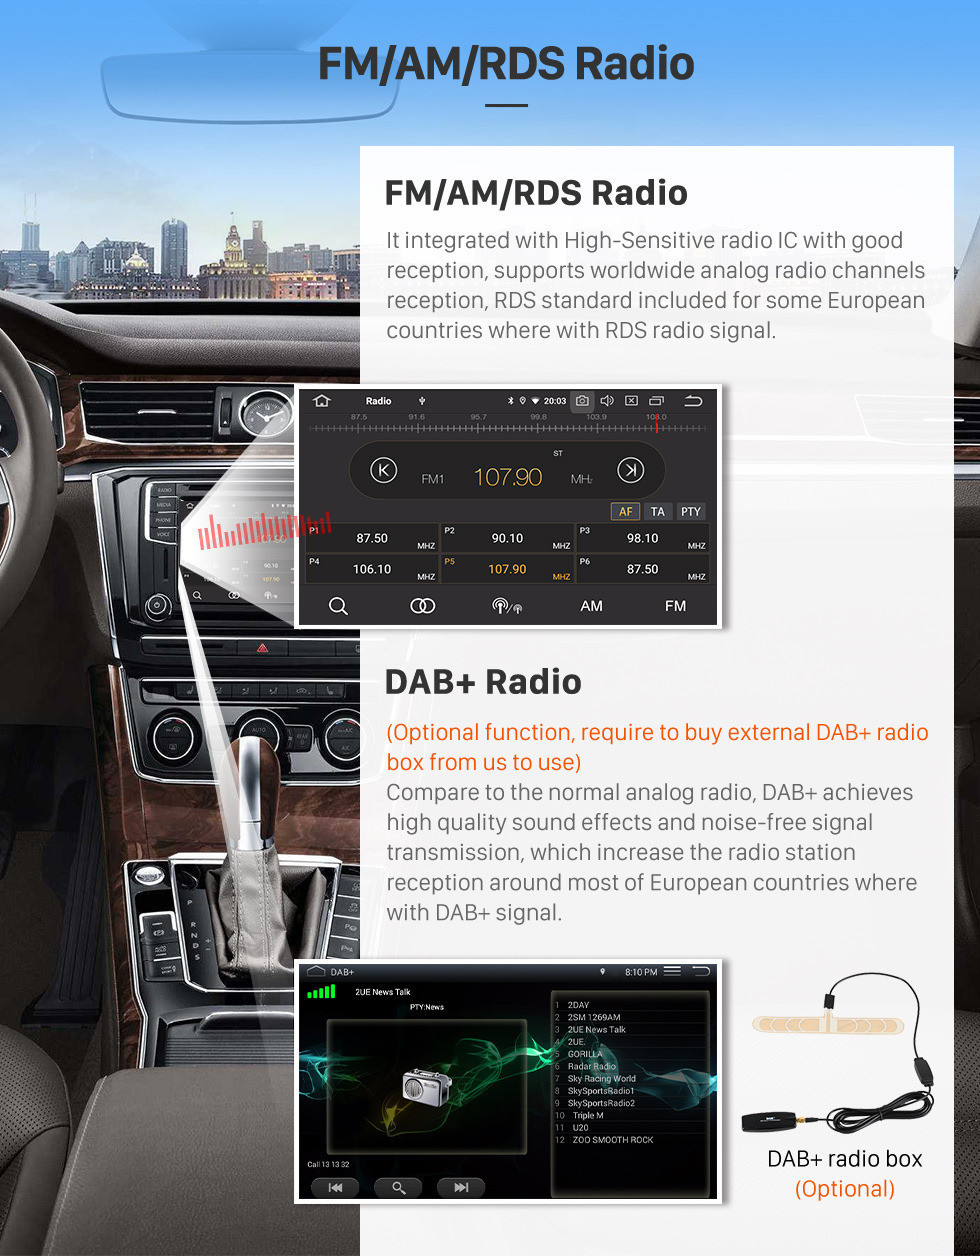 Seicane Android 9.0 HD Touch Screen Radio GPS Navigation System for 2005-2012 BMW 3 Series E90 E91 E92 E93 316i 318i 320i 320si 323i 325i 328i 330i 335i 335is M3 316d 318d 320d 325d 330d 335d with WiFi OBD2 DVR